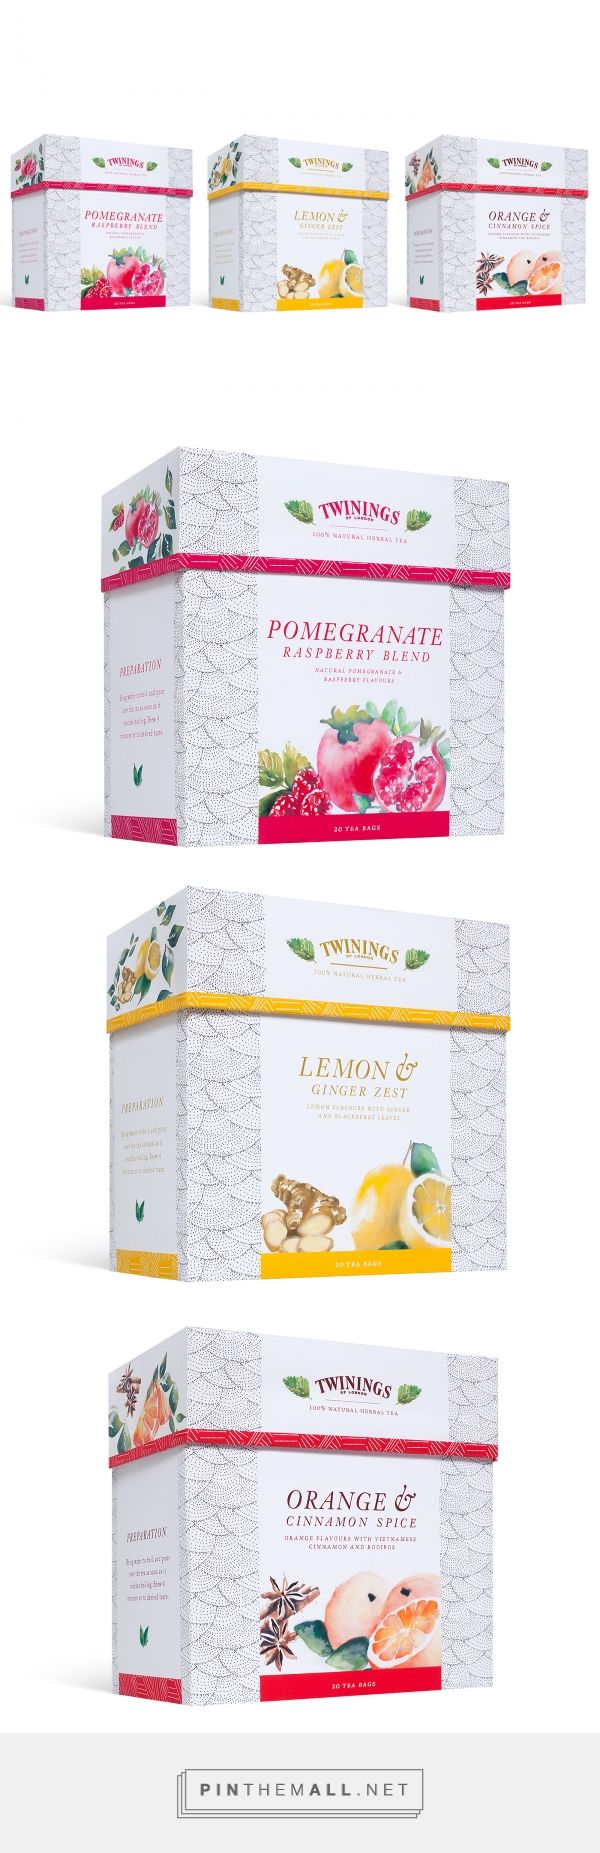 Twinings Tea Packaging (Concept) by Alicia Coleman. Source: Behance. Pin curated by #SFields99 #packaging #design